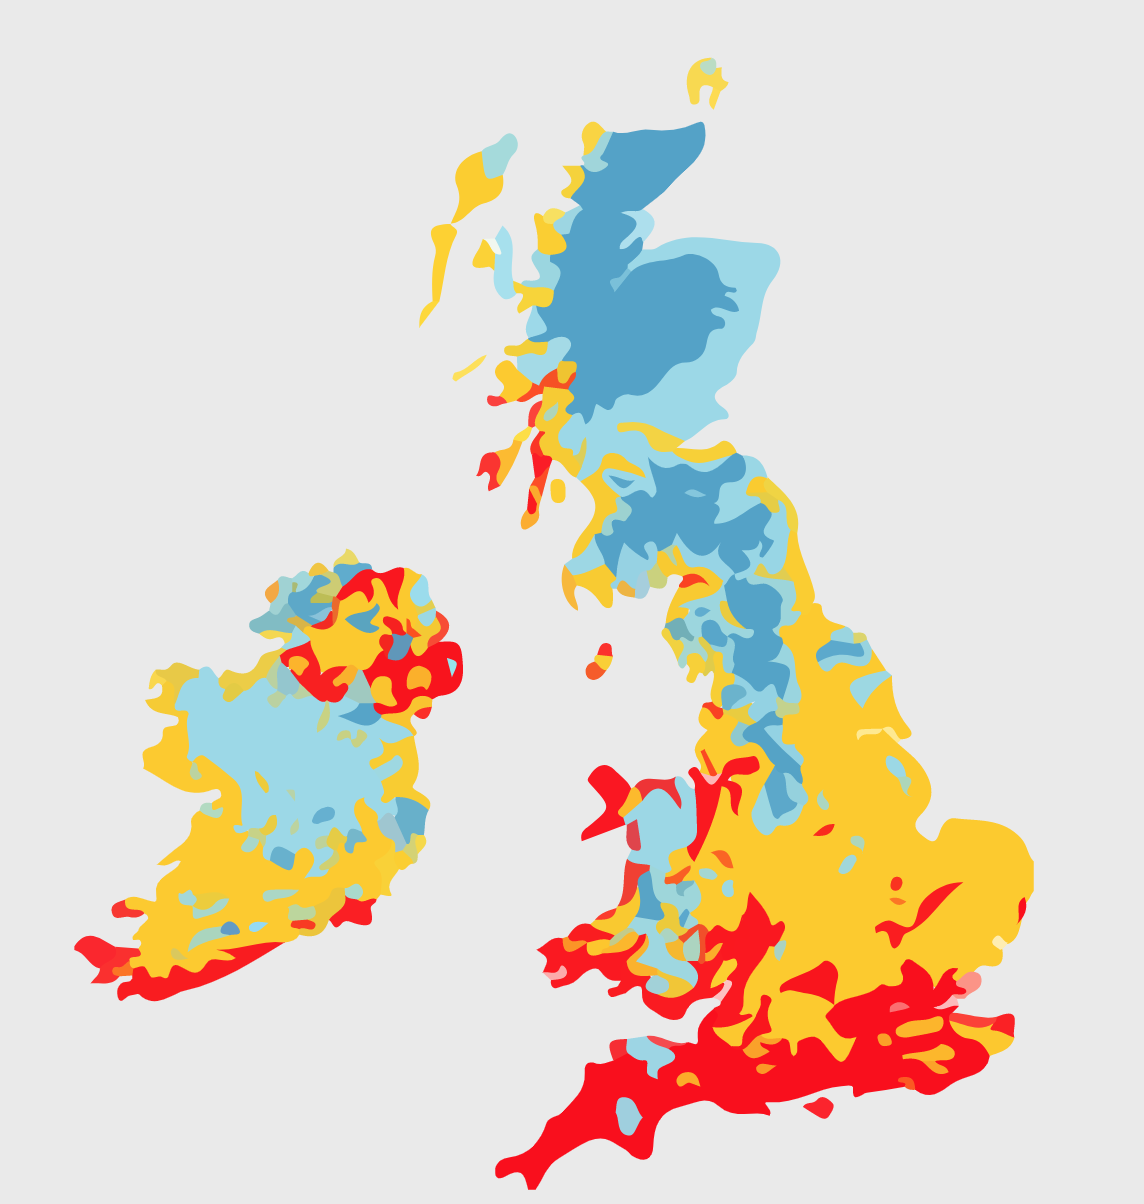 Thermal zones showing the local climates across the UK and Ireland